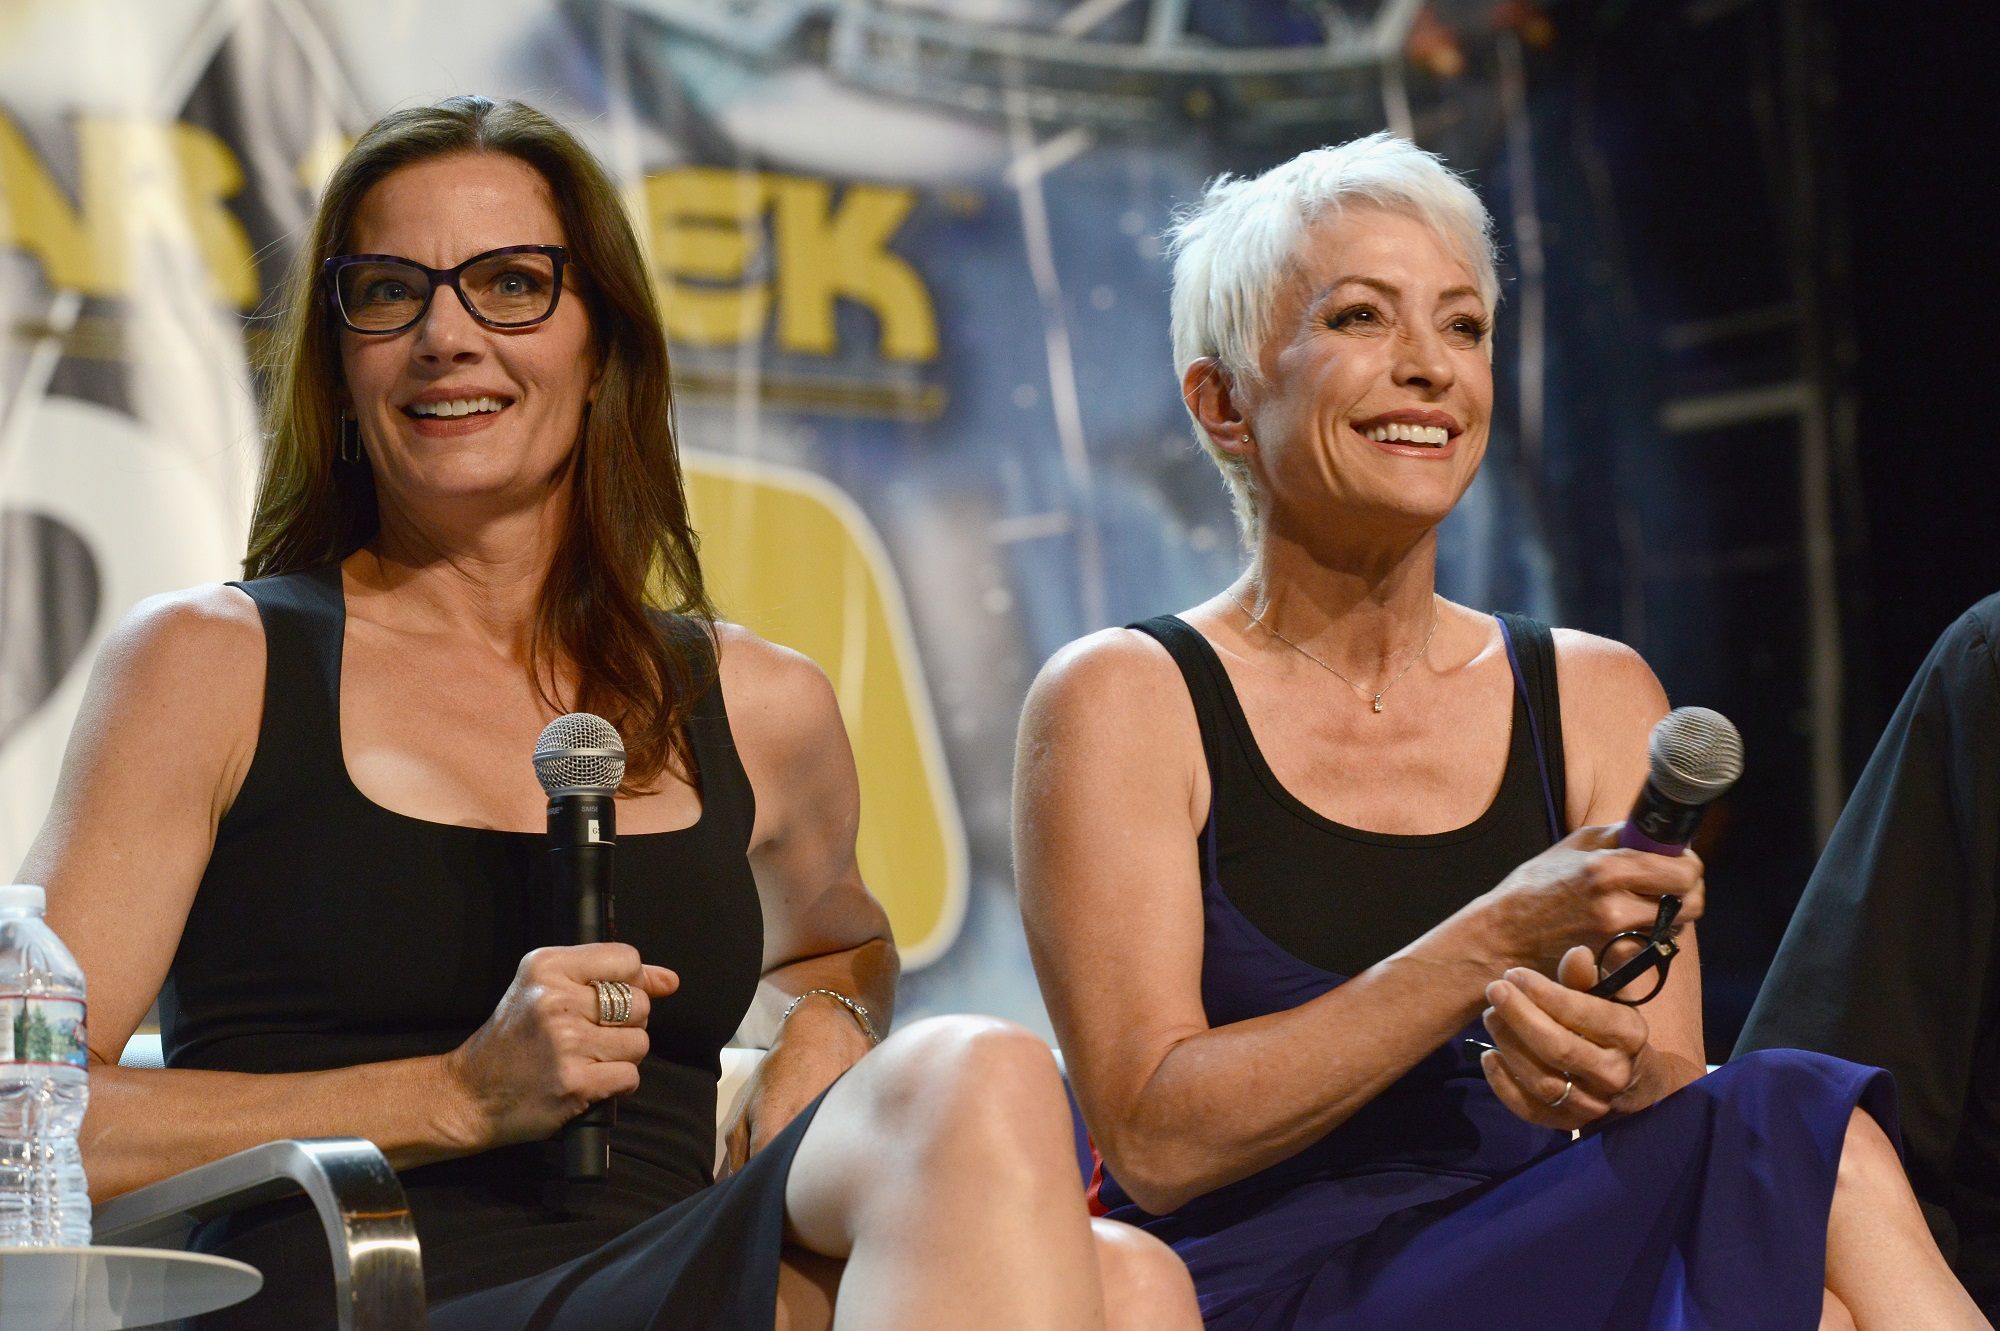 Terry Farrell and Nana Visitor of Star Trek: DS9